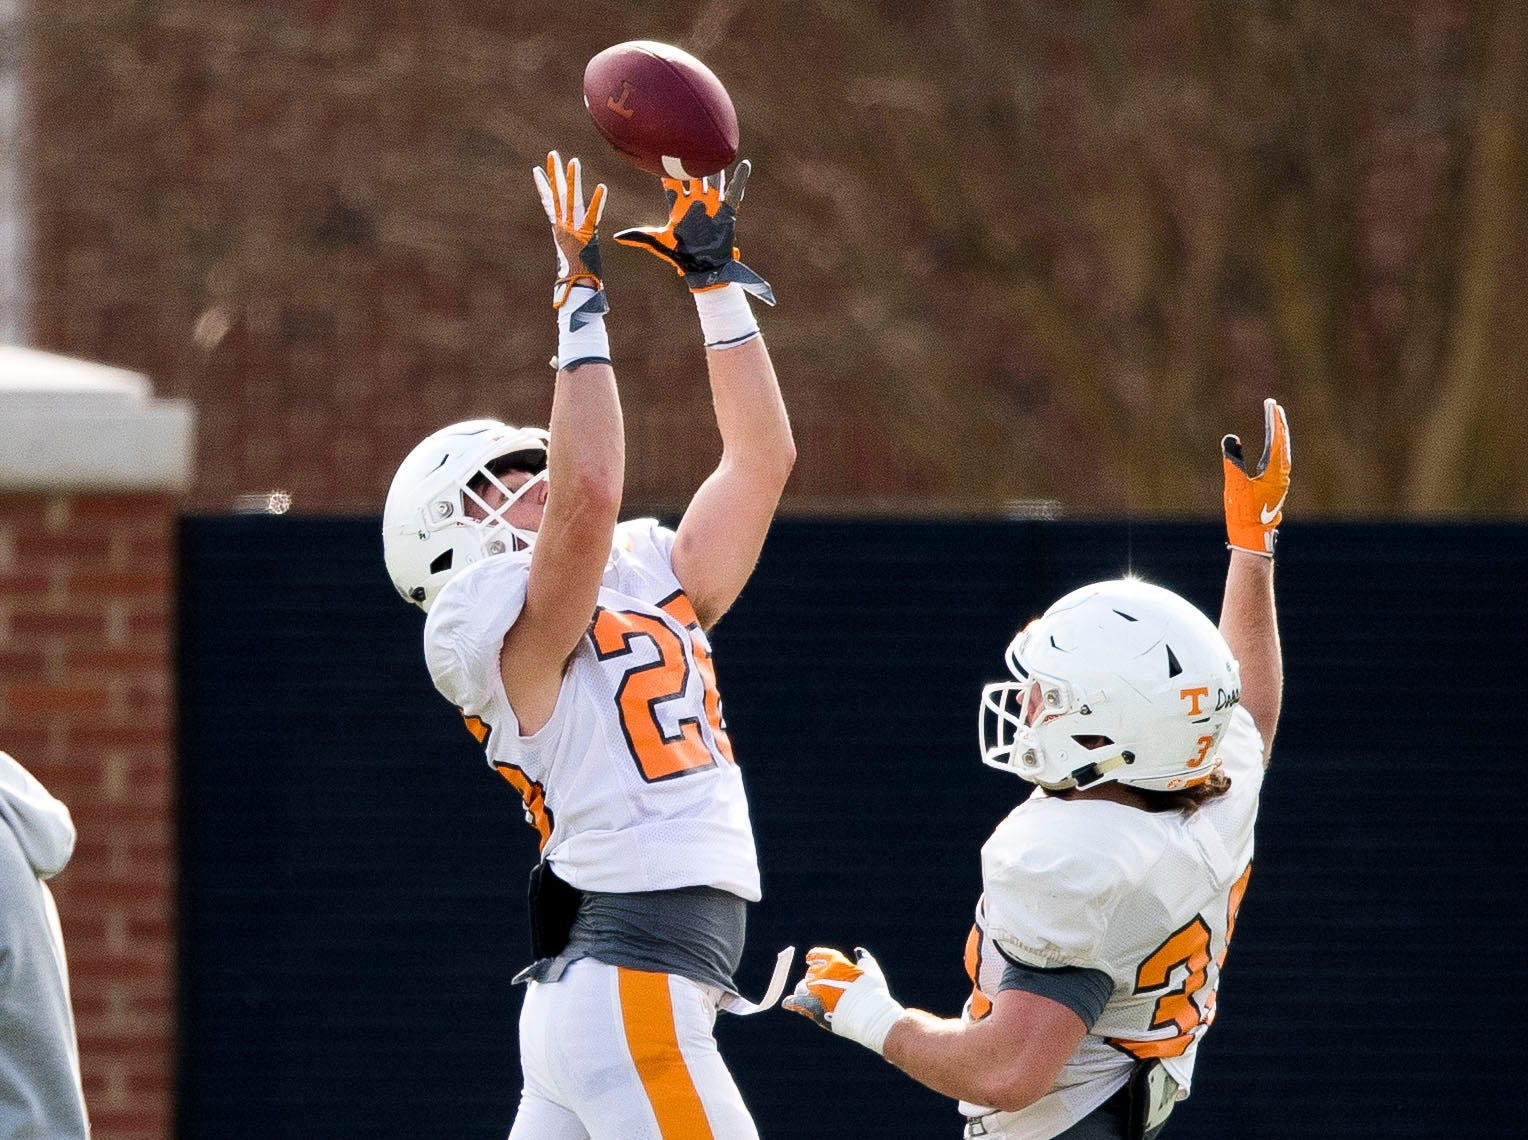 Tennessee wide receiver JT Siekerman (26) makes a catch during Tennessee's afternoon football practice on Monday, March 11, 2019.